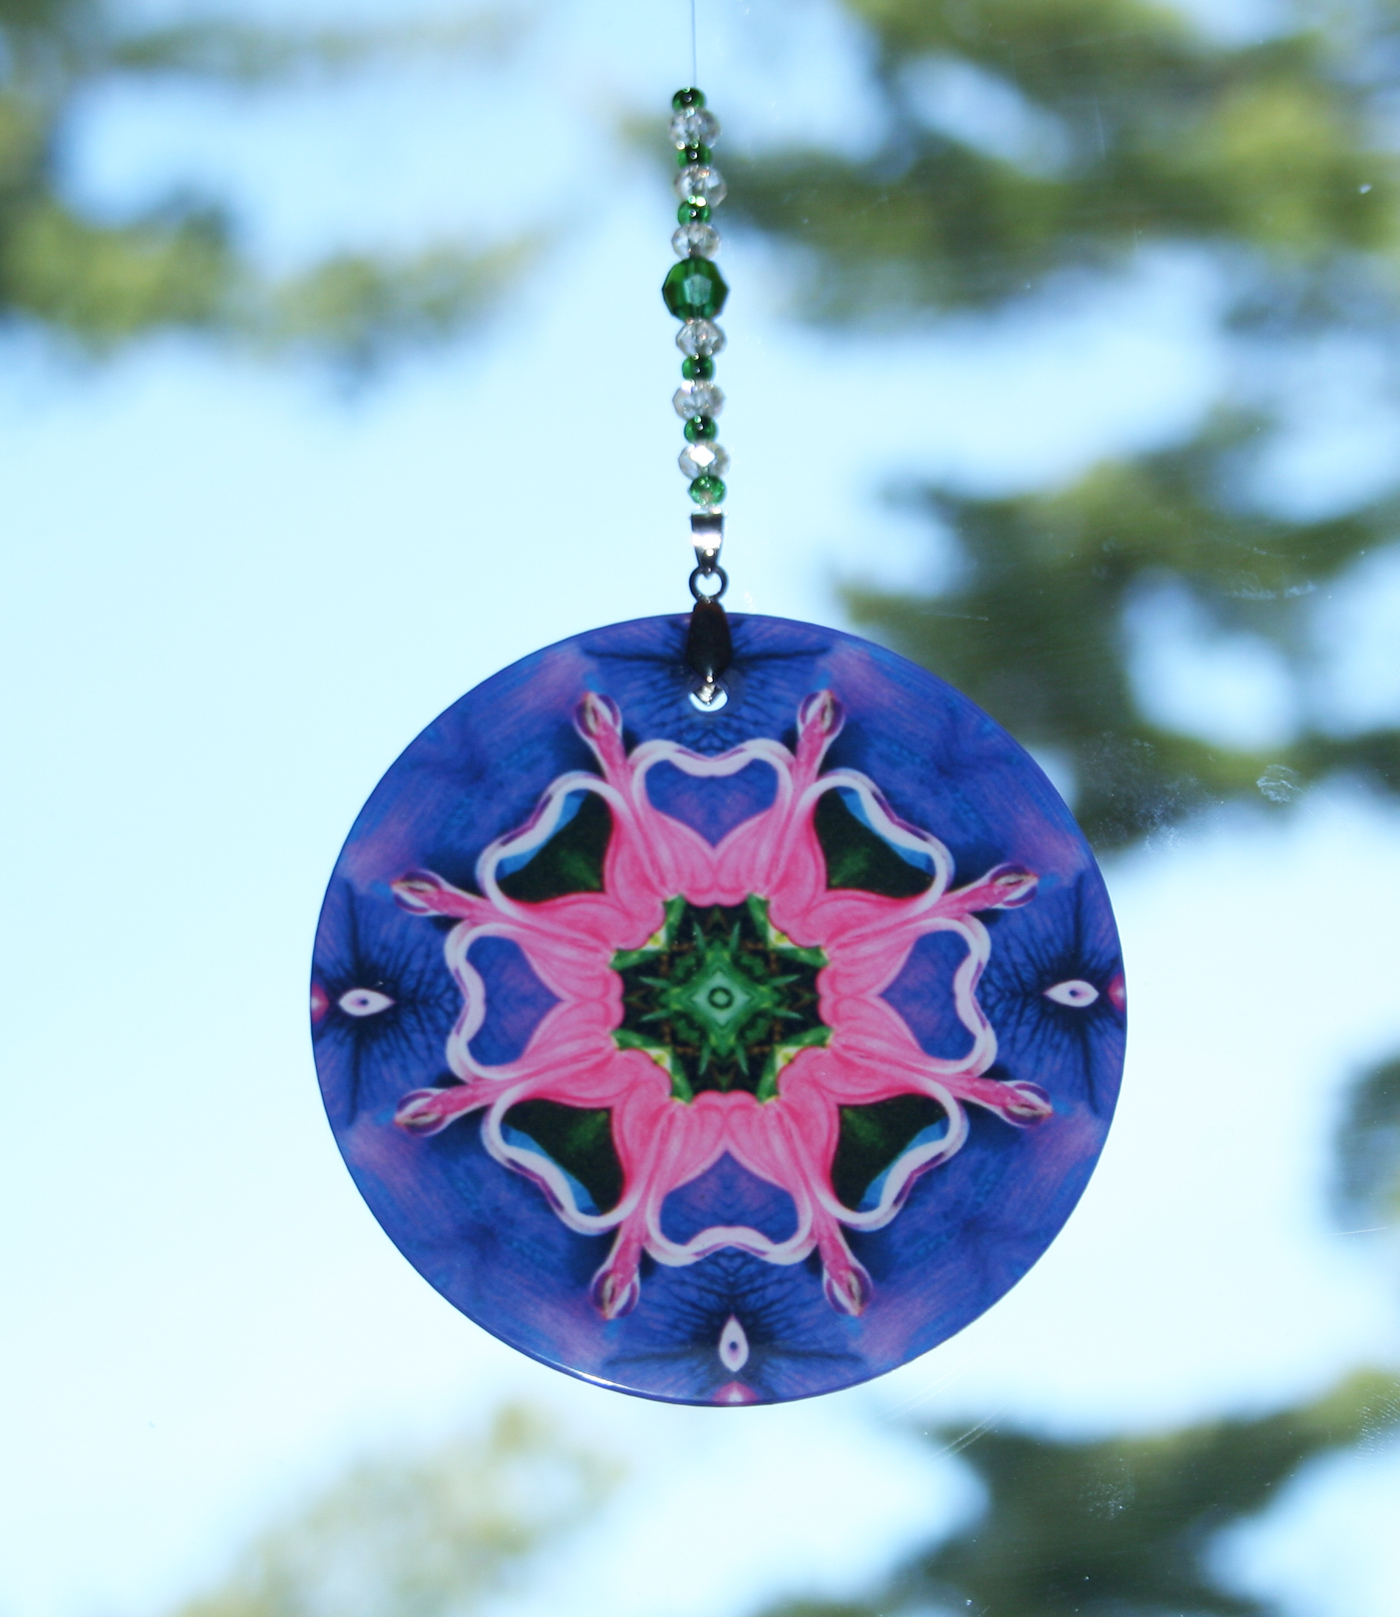 Heart Chakra Glass Suncatcher Bleeding Heart Mandala Boho Chic New Age Sacred Geometry Hippie Kaleidoscope Meditation Zen Unique Gift For Her Bewitched